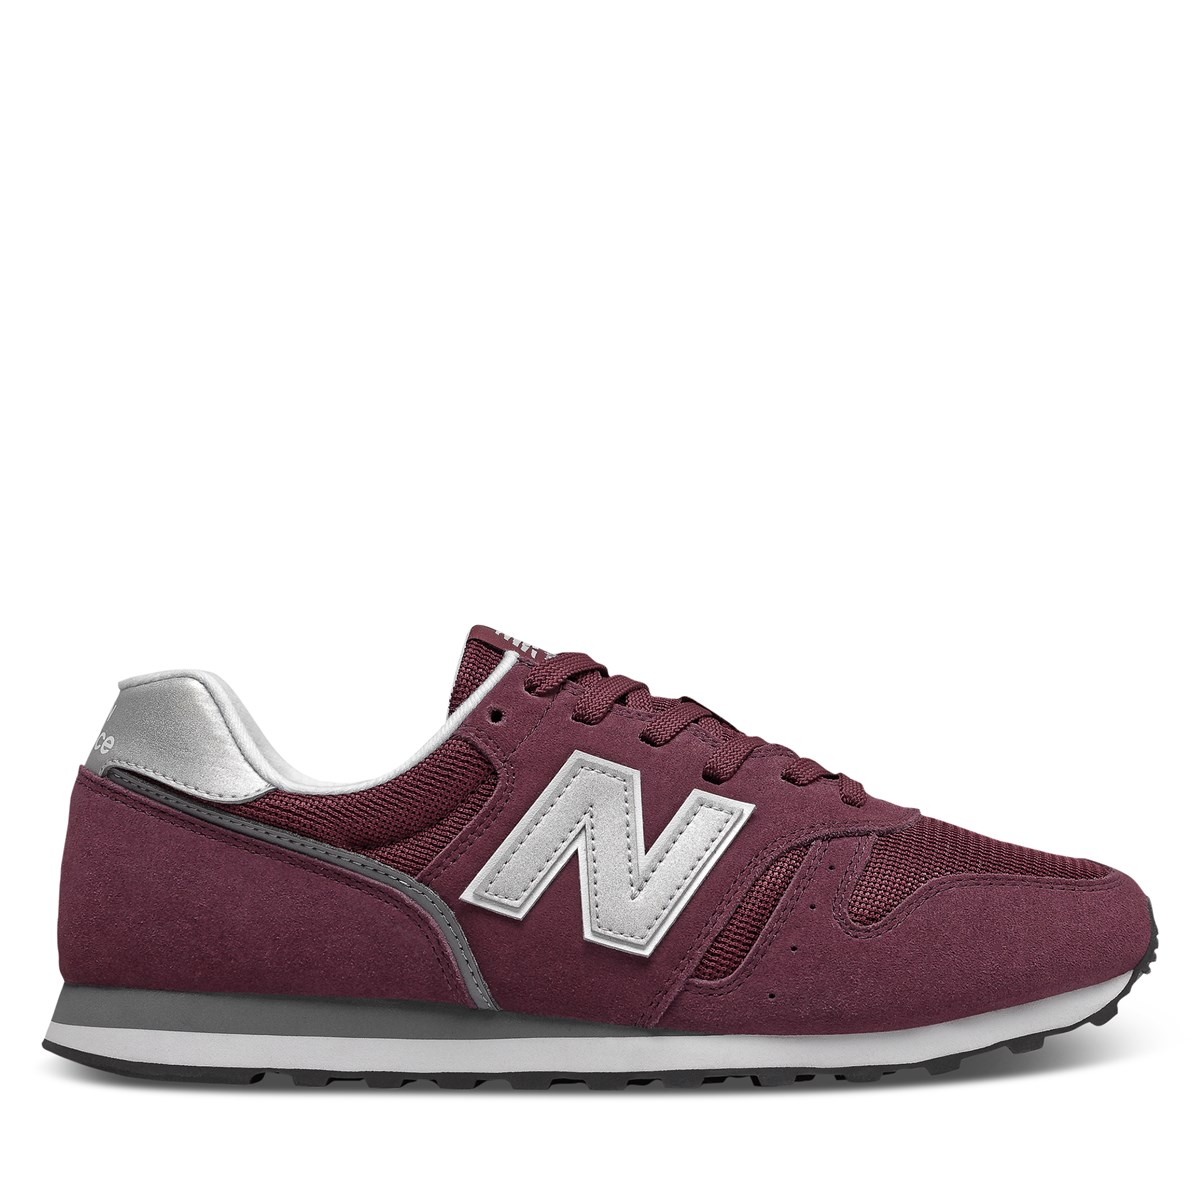 Men's 373 Sneakers in Burgundy